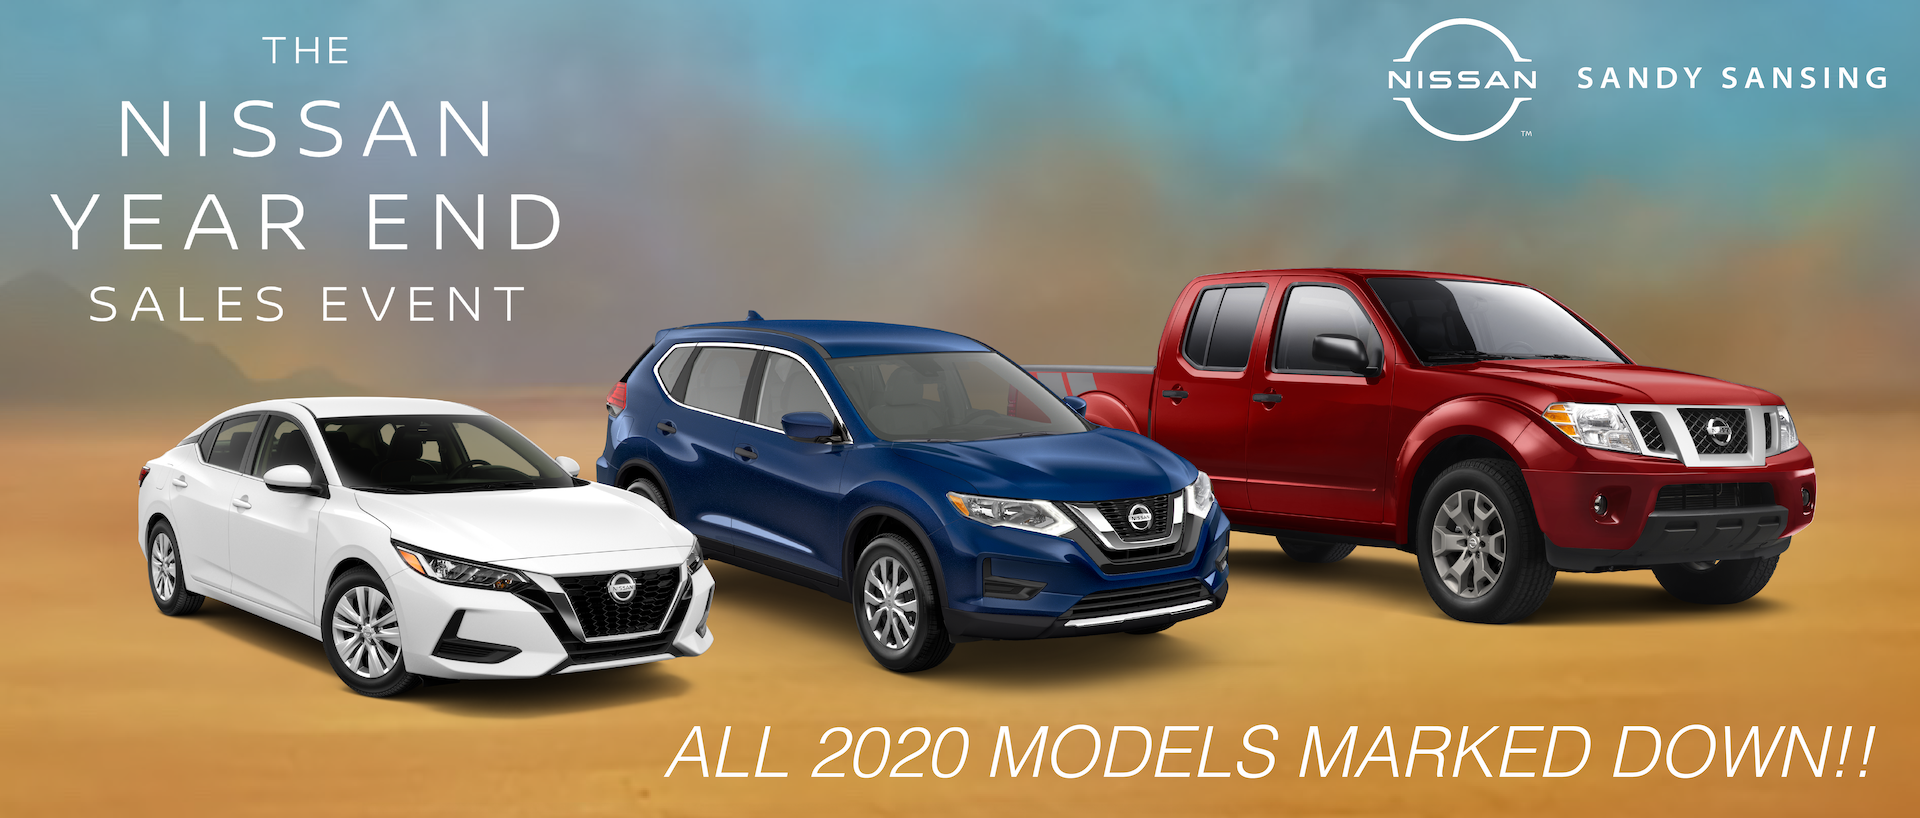 nissan year end sales-01